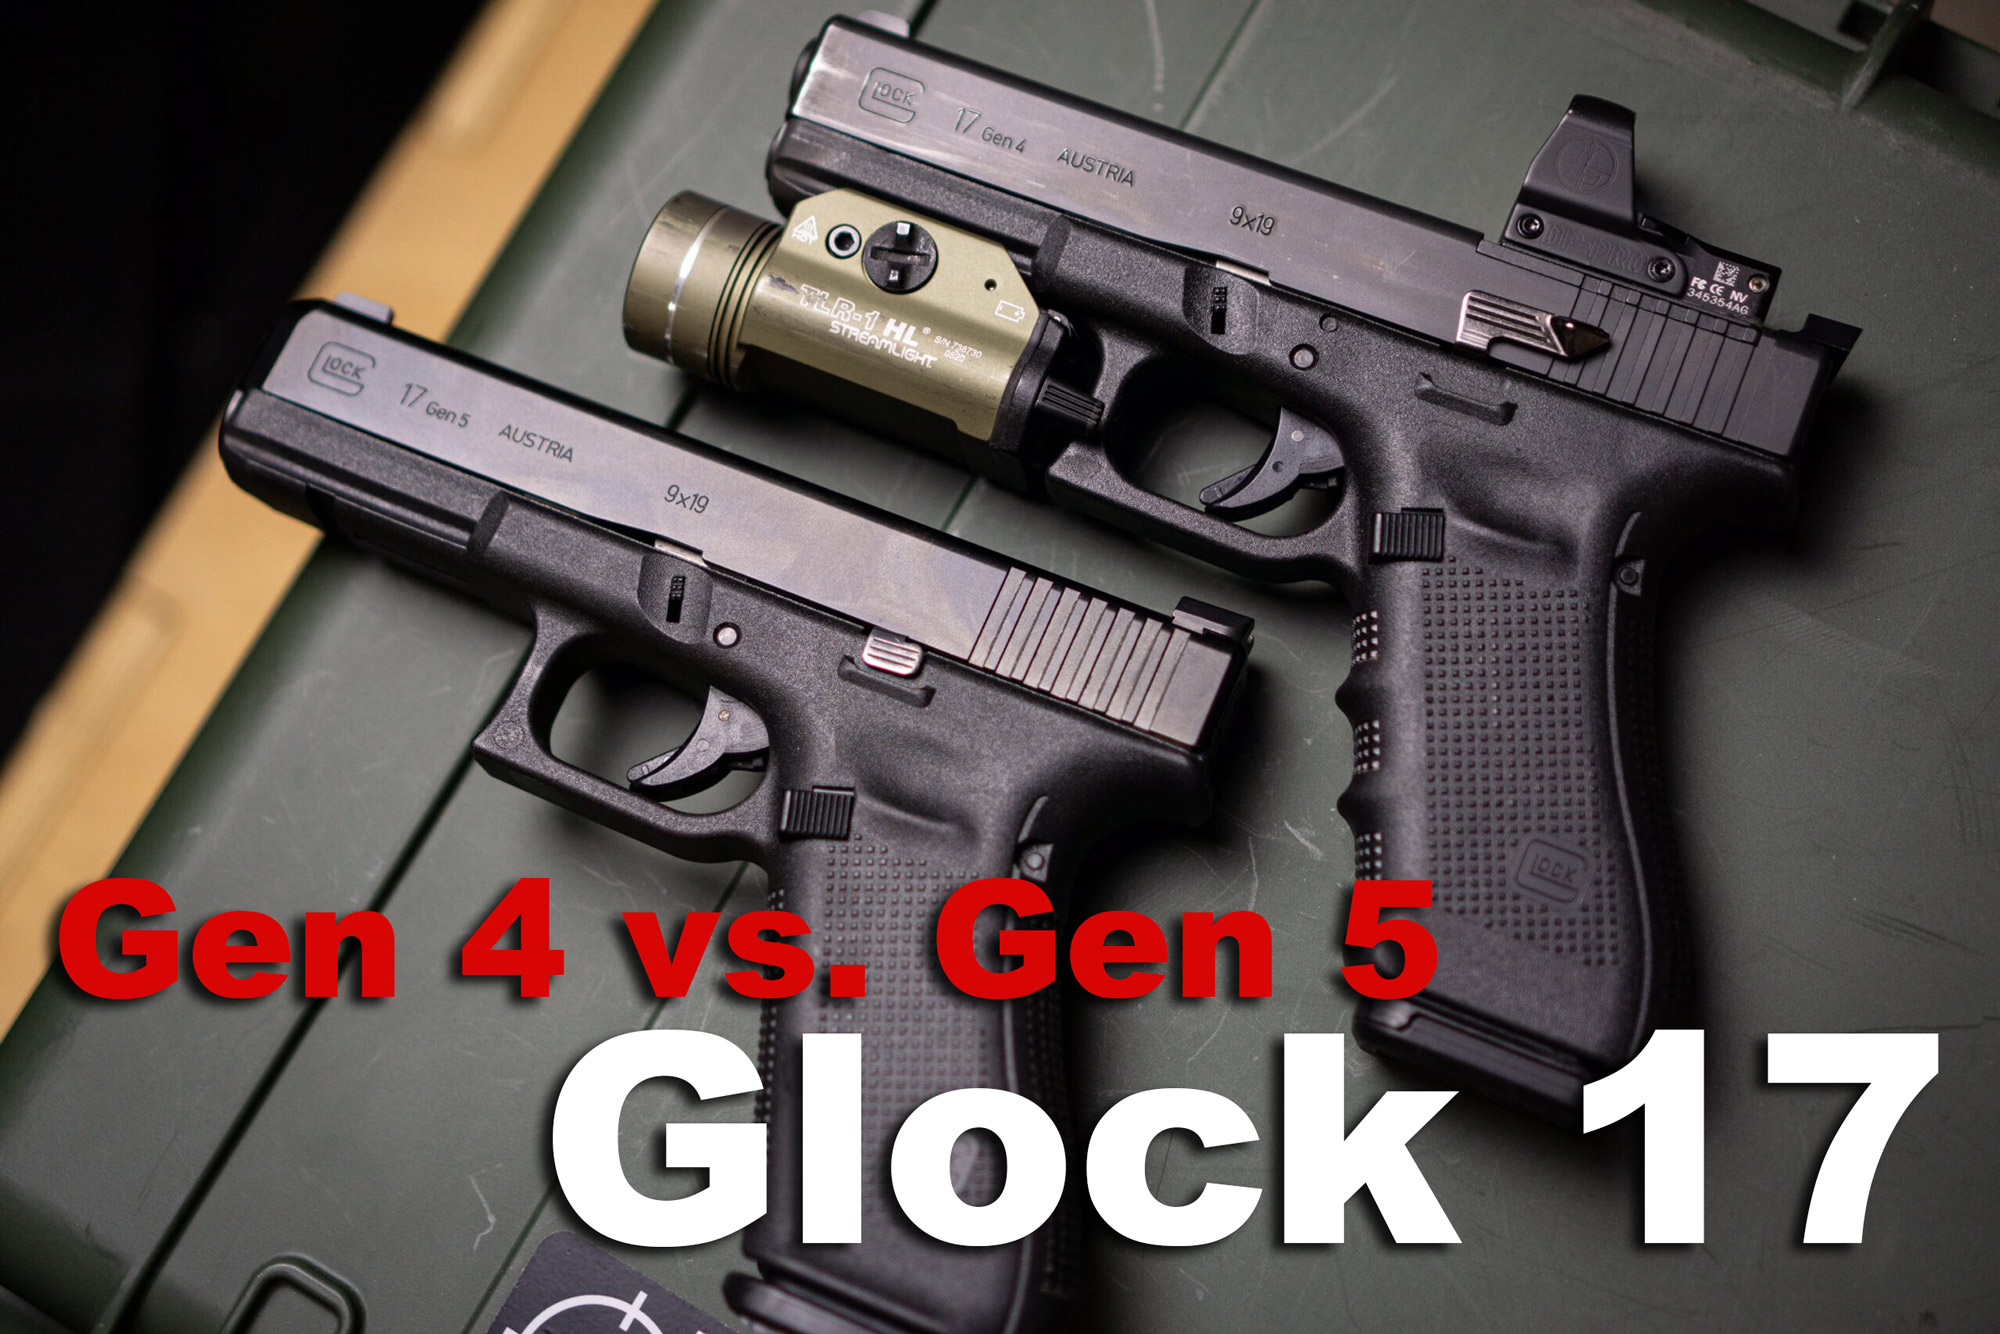 Glock 17 Gen 4 vs Gen 5 pistols side by side